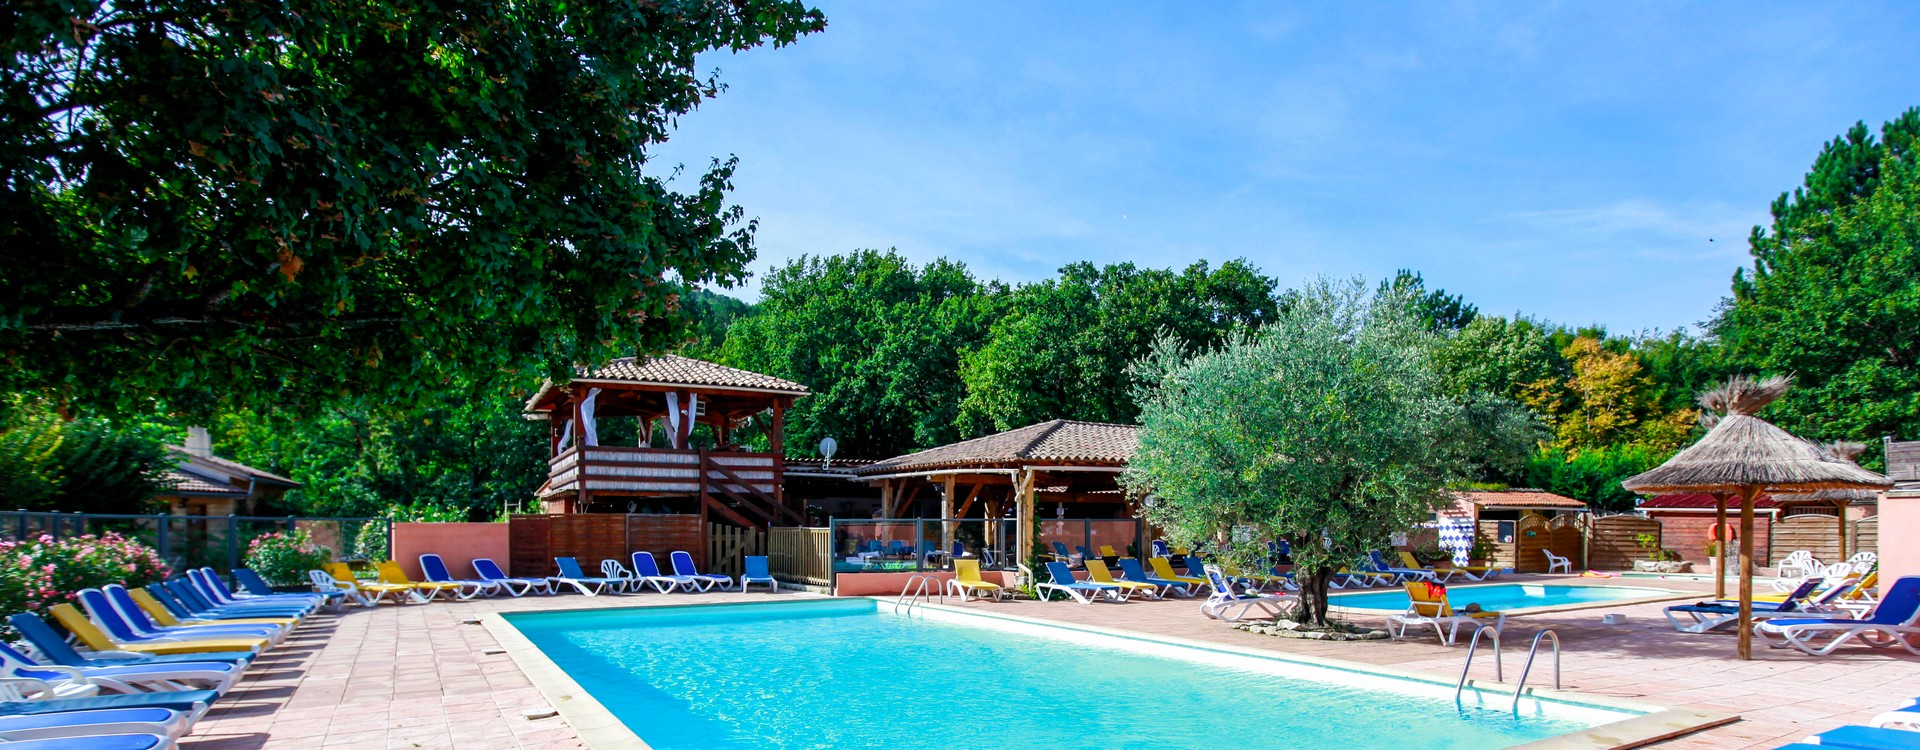 Camping Le Luberon : Slider